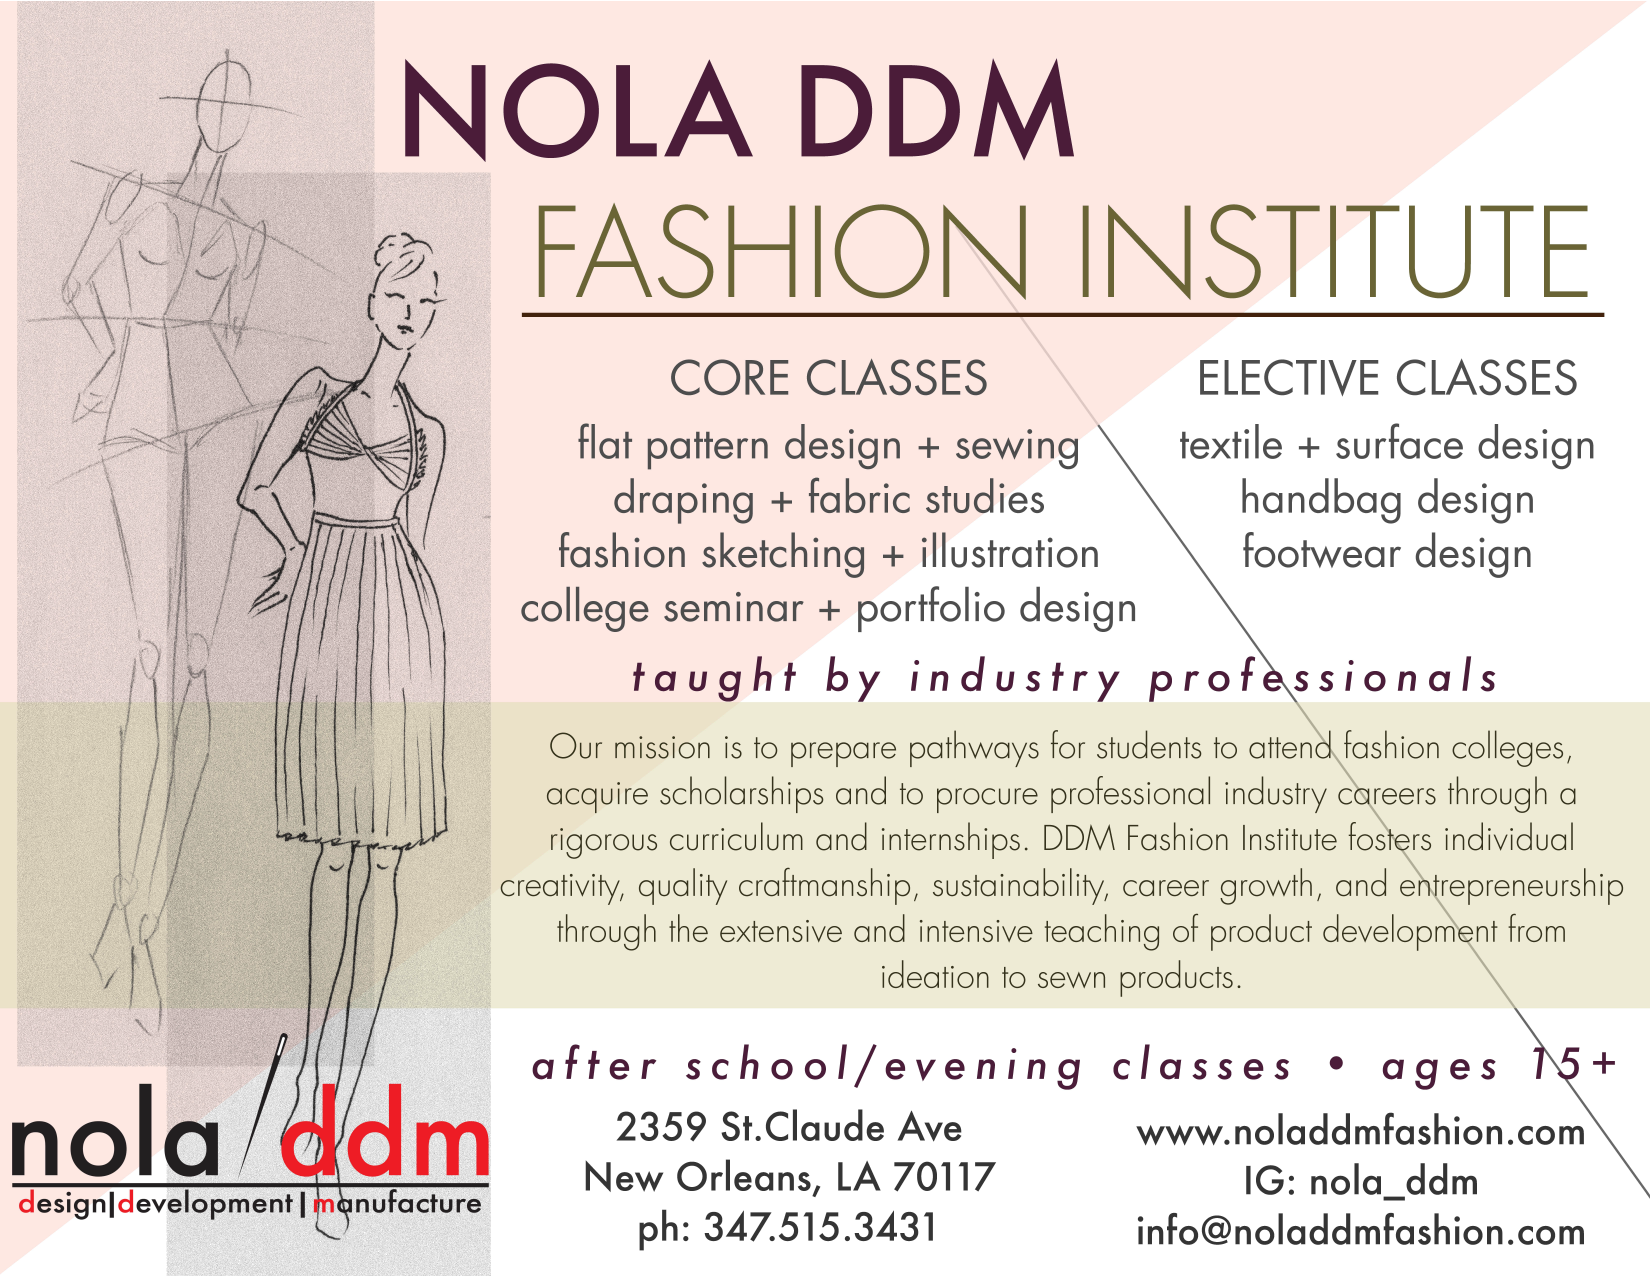 Classes Nola Ddm